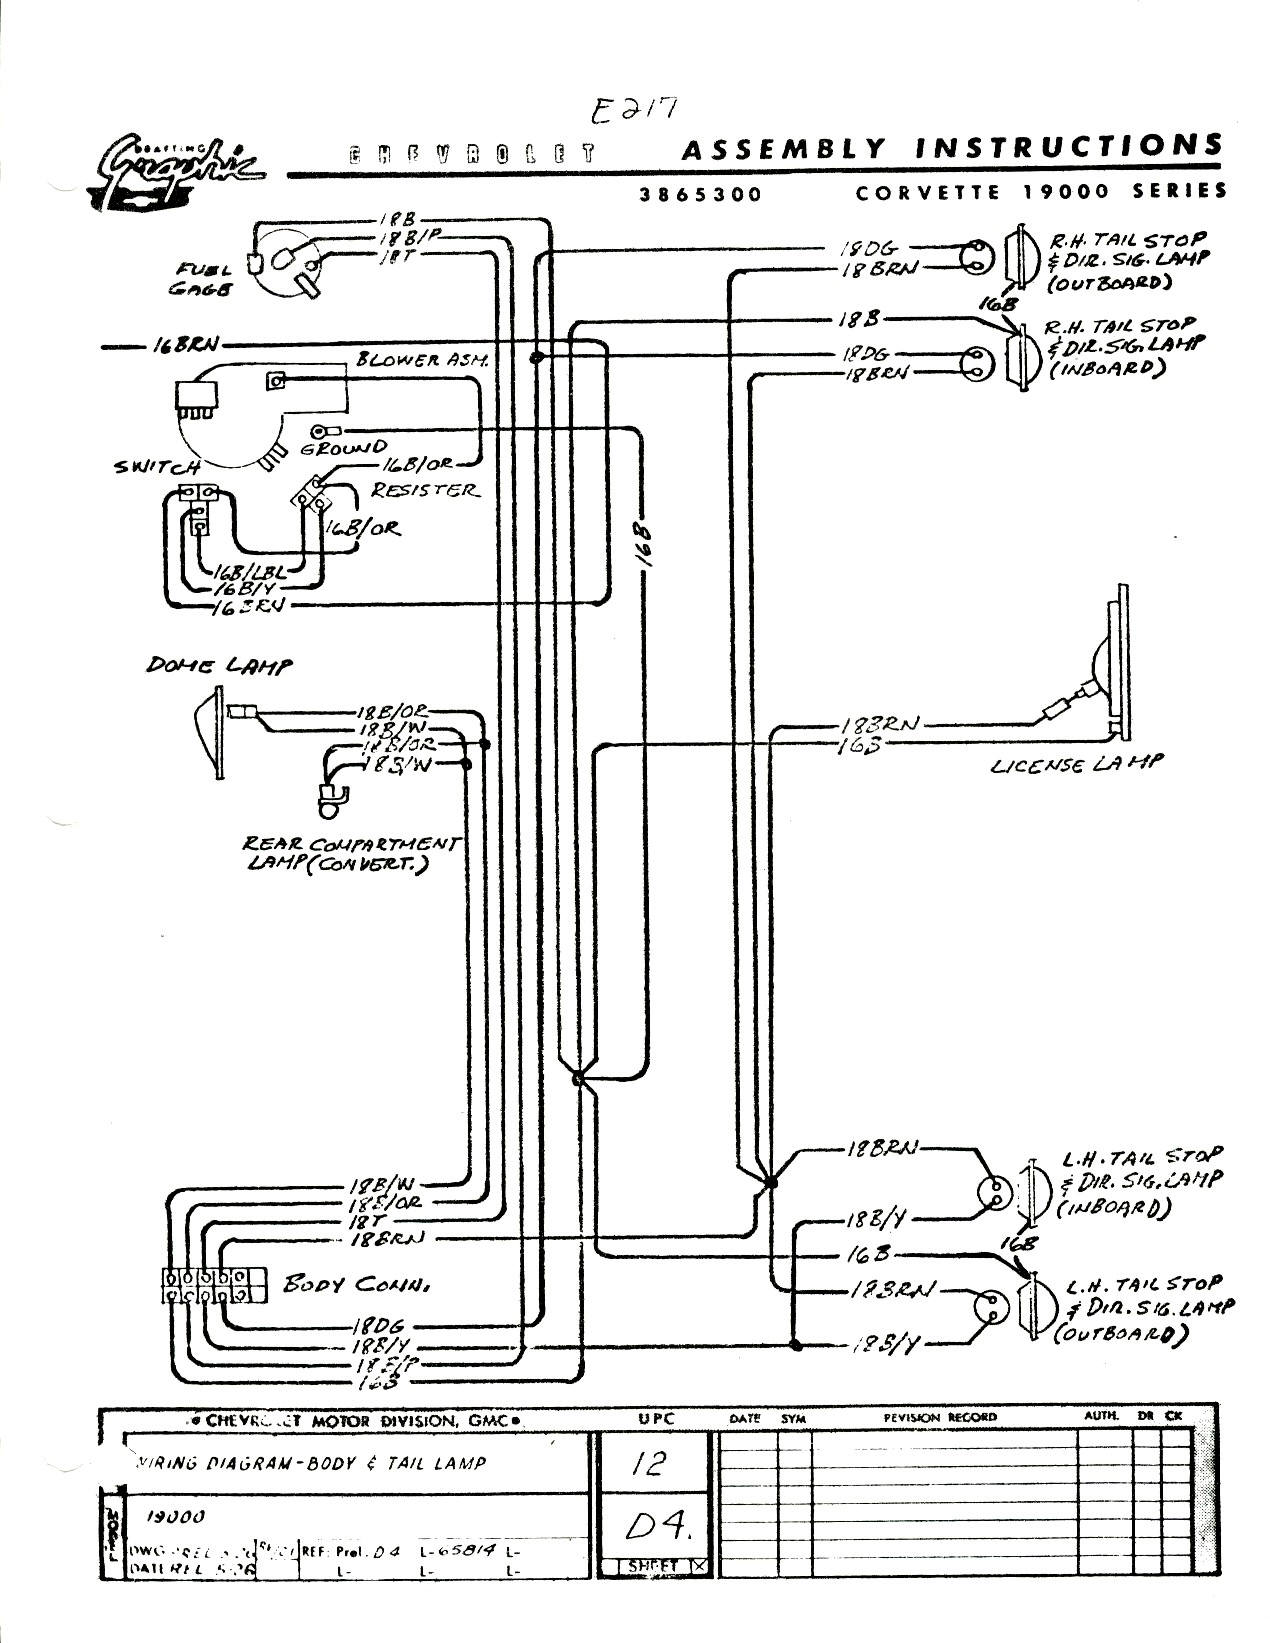 1974 Camaro Wiring Harness Auto Electrical Diagram Transmission Dakota 19880dodge For 74 Corvette Get Free Image